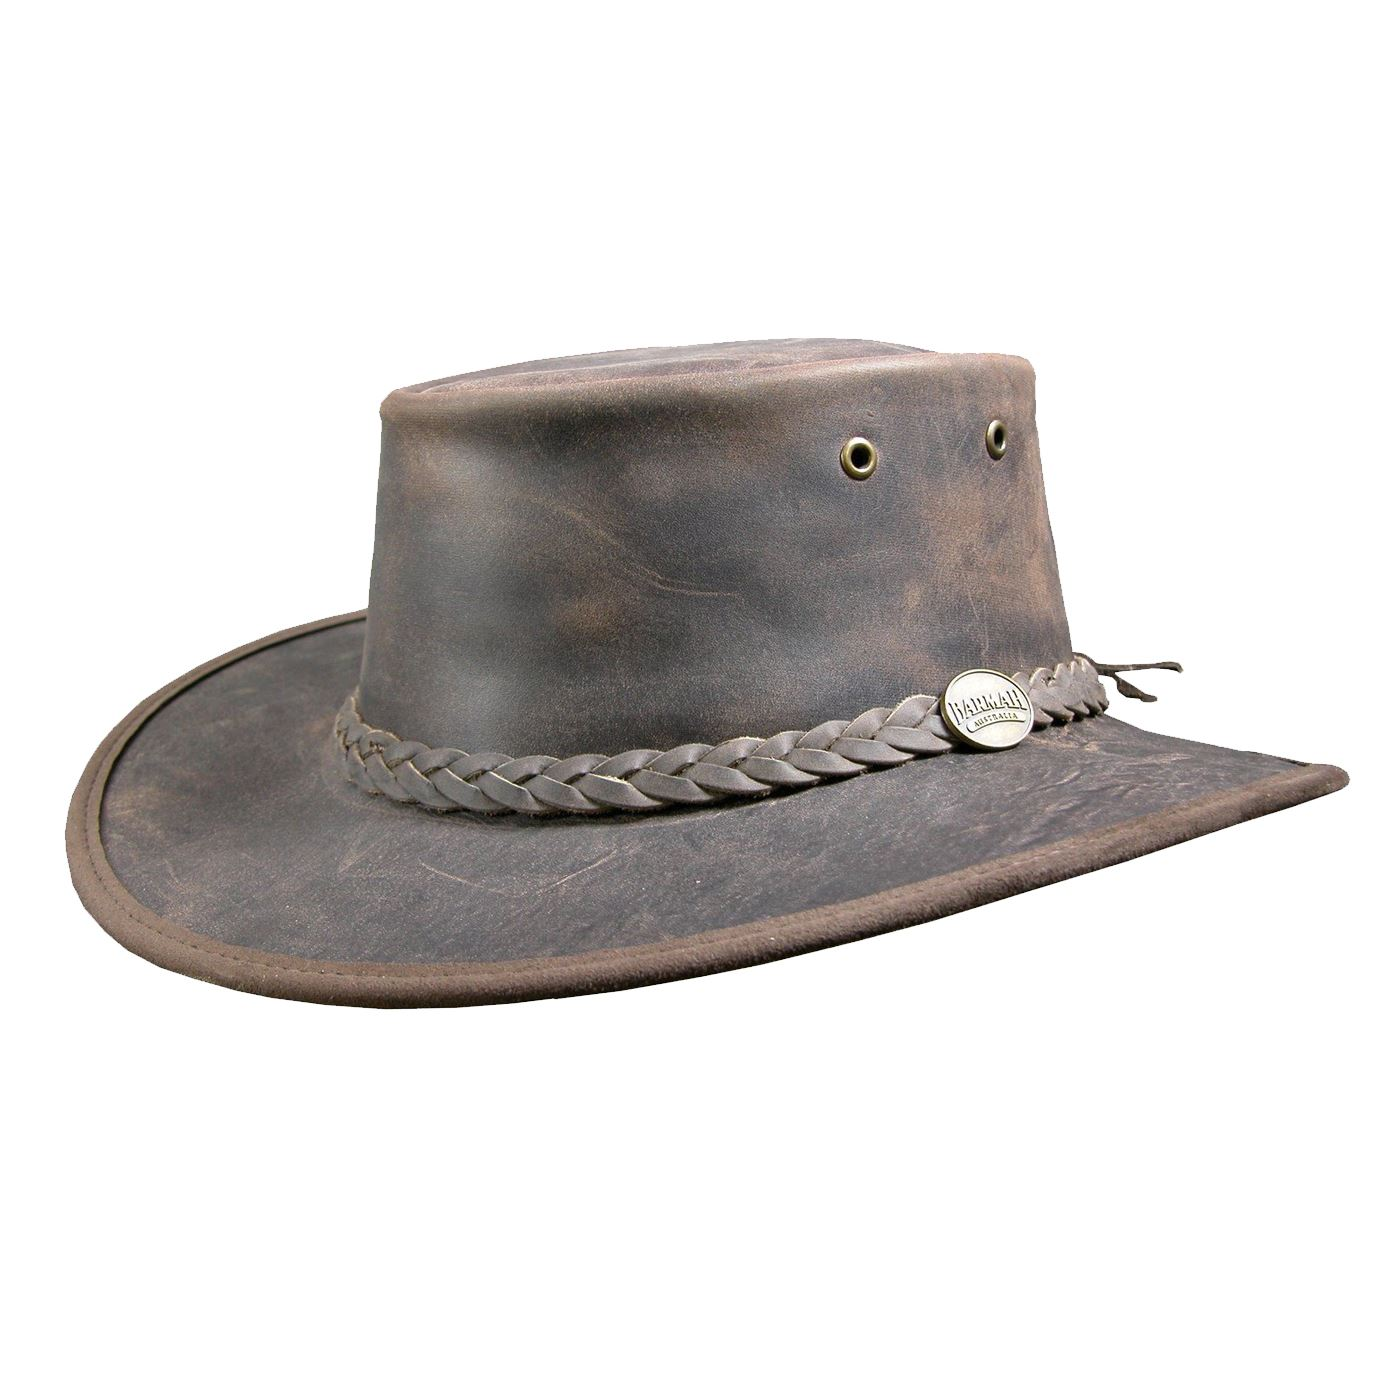 Barmah Foldaway Bronco Leather Outback Hat in Black